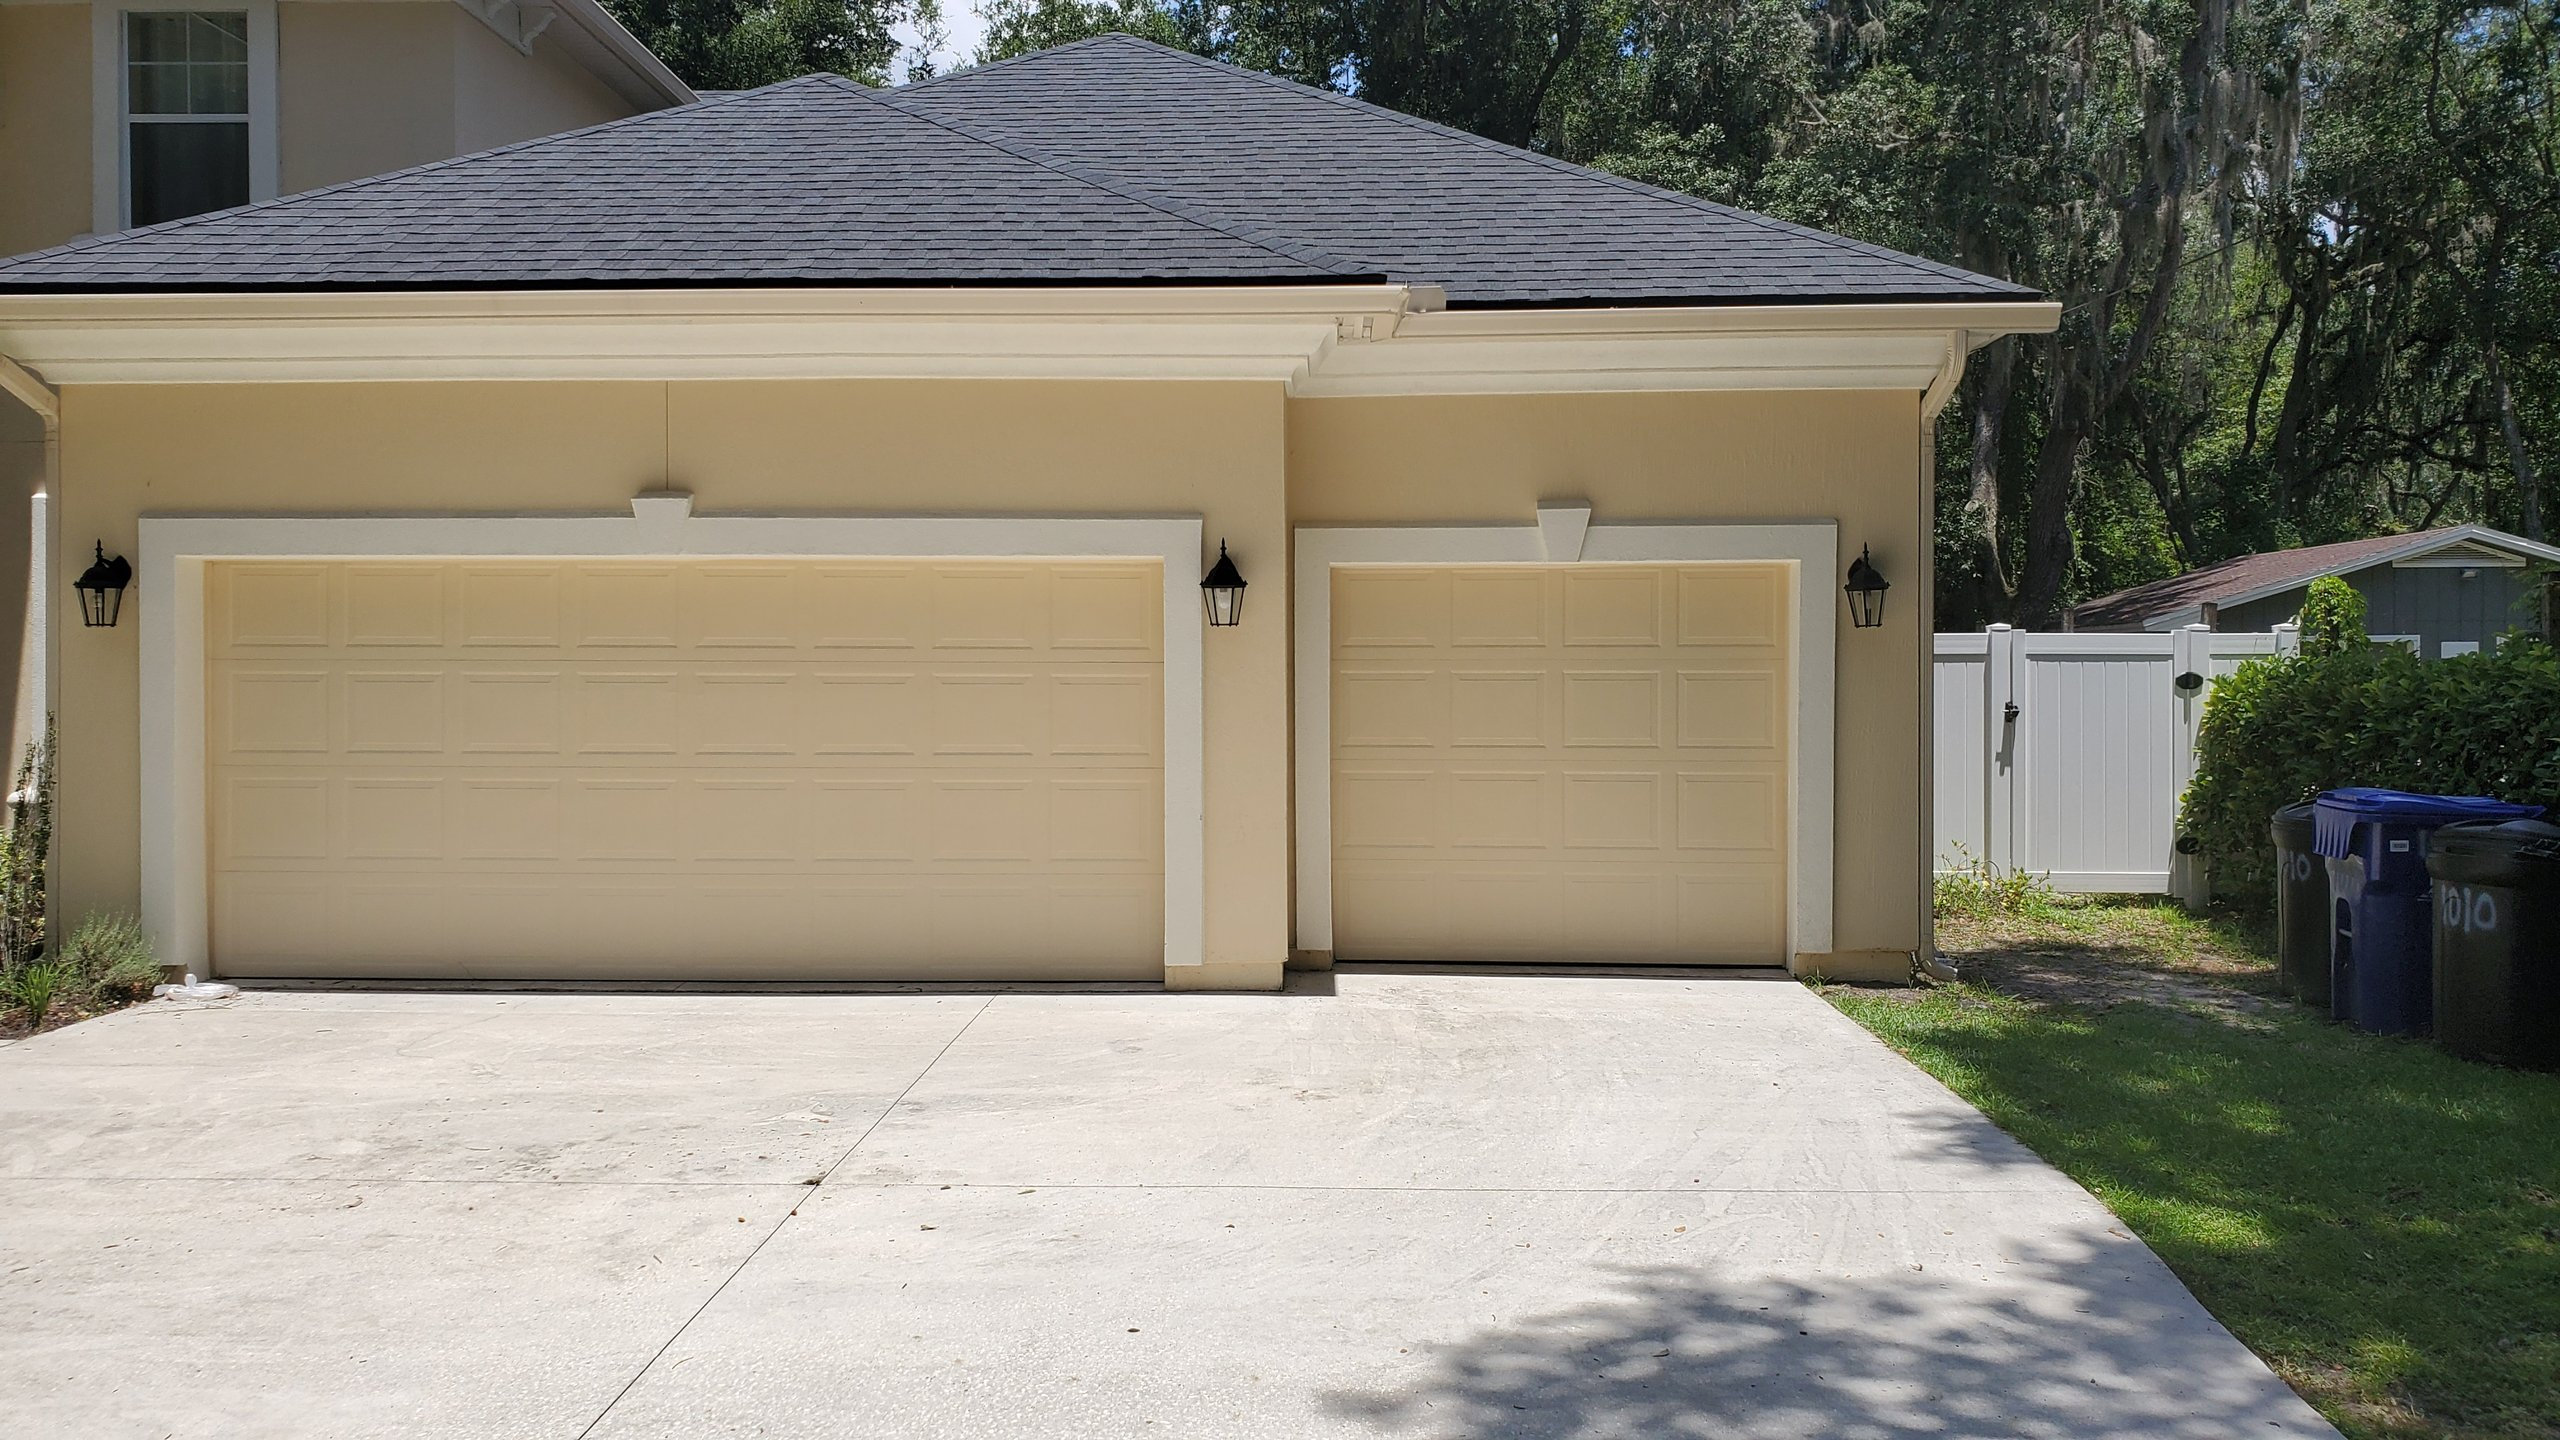 10x10 Garage self storage unit